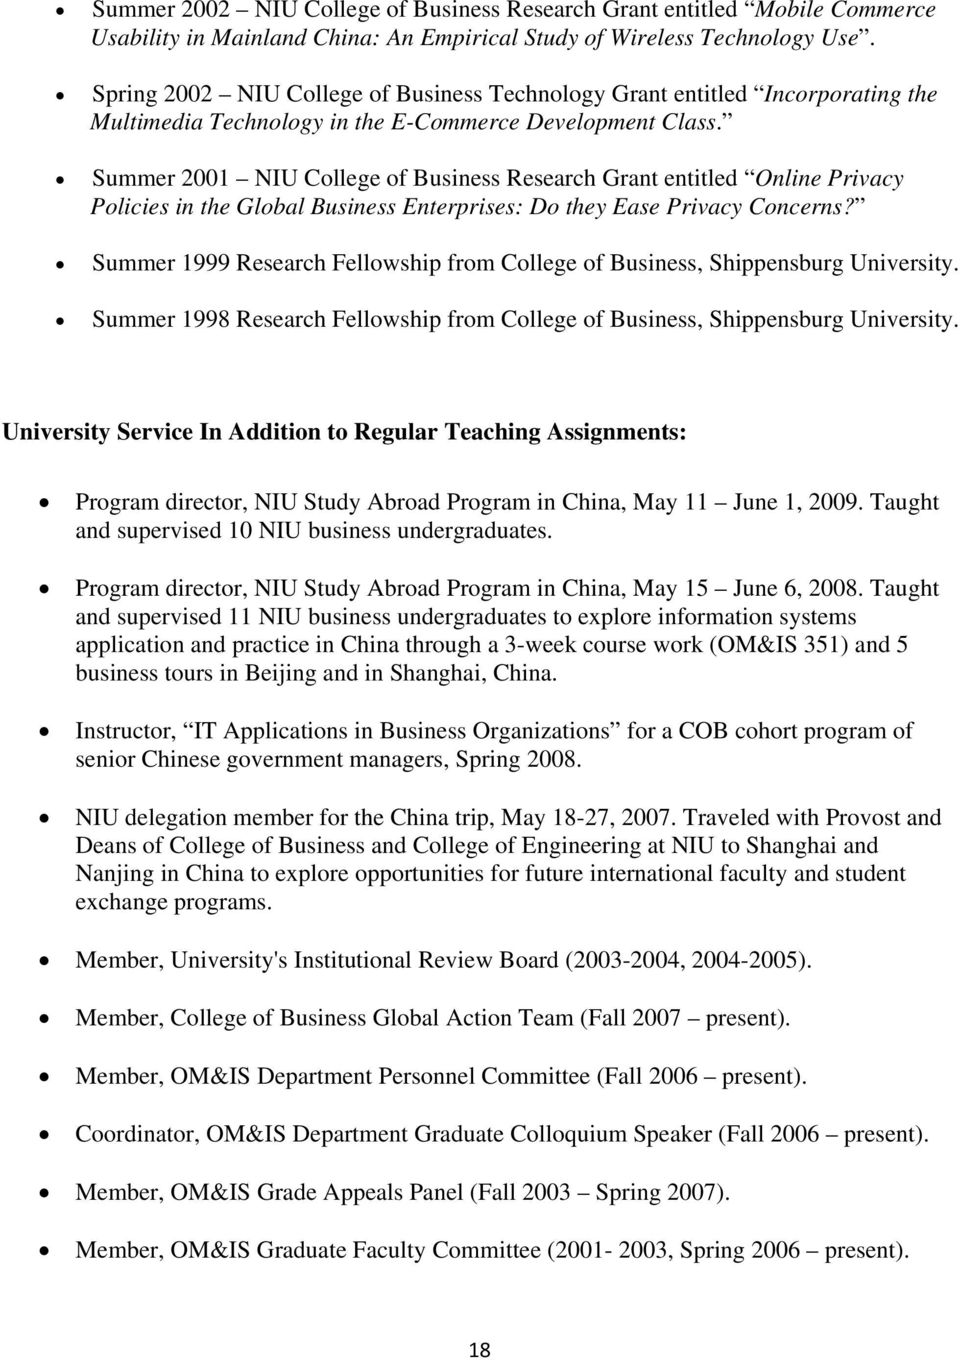 Summer 2001 NIU College of Business Research Grant entitled Online Privacy Policies in the Global Business Enterprises: Do they Ease Privacy Concerns?